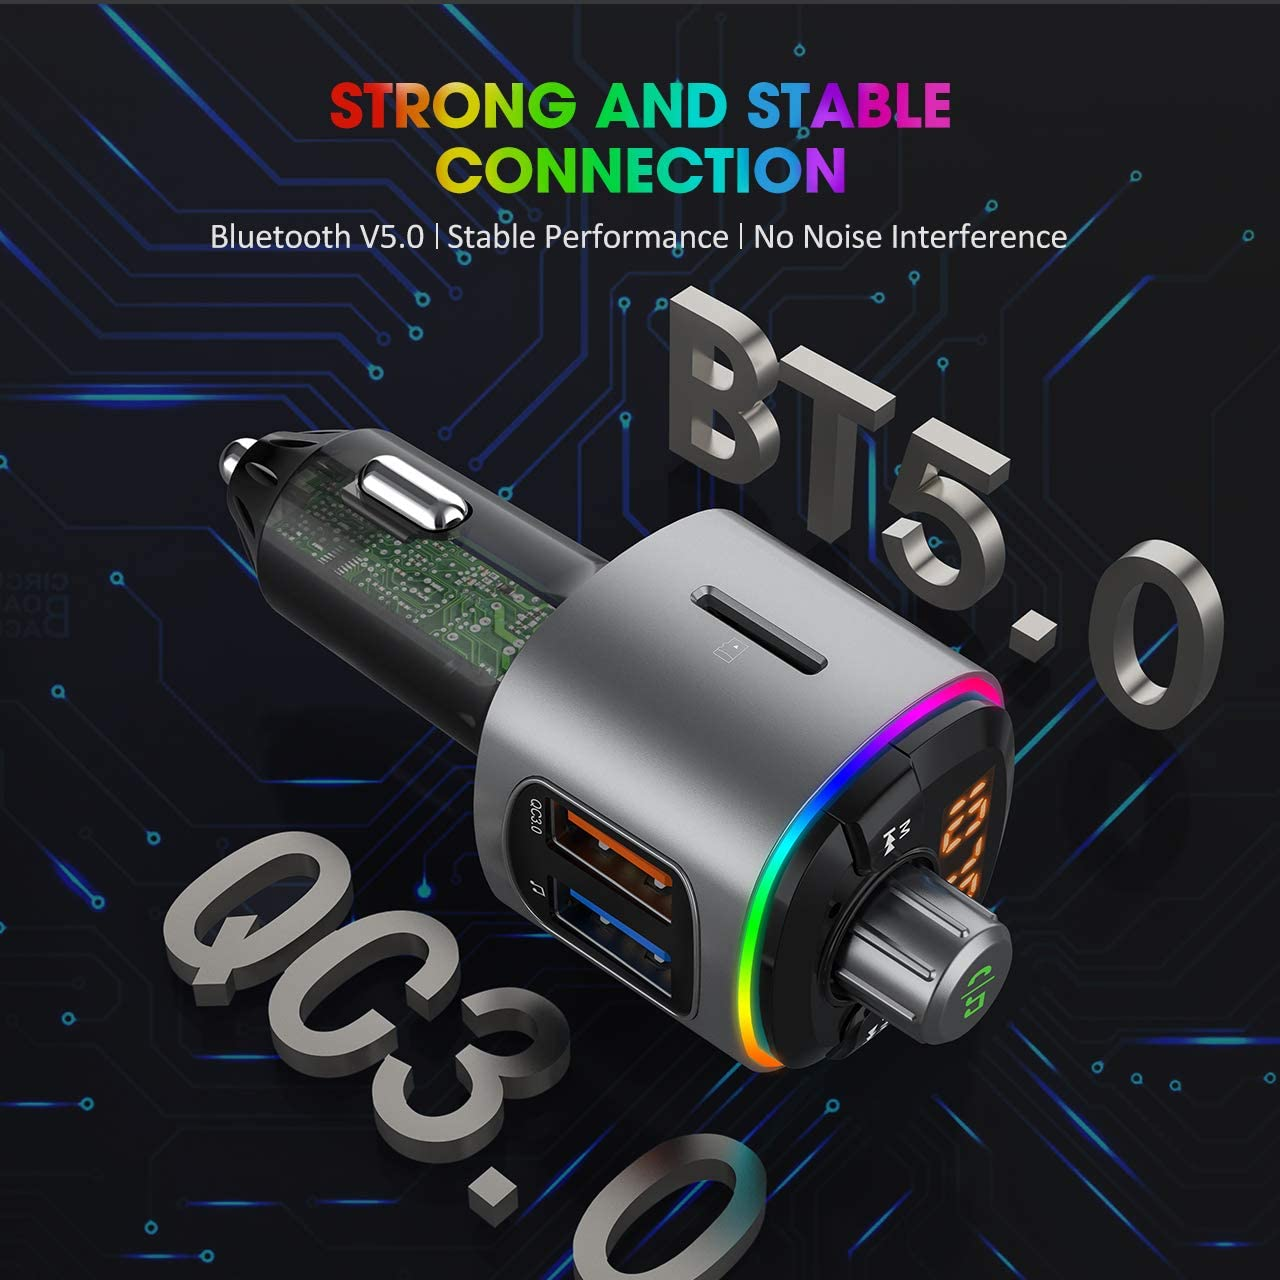 Support U-Disk//TF Card 9 Color Modes Wireless In-Car Fm Radio Adapter with Real Dynamic RGB Bluetooth Car Kit Quick Charge 3.0 Dual USB Ports VicTsing FM Transmitter for Car Bluetooth 5.0 Siri Voice Assistant Hands-Free Calls